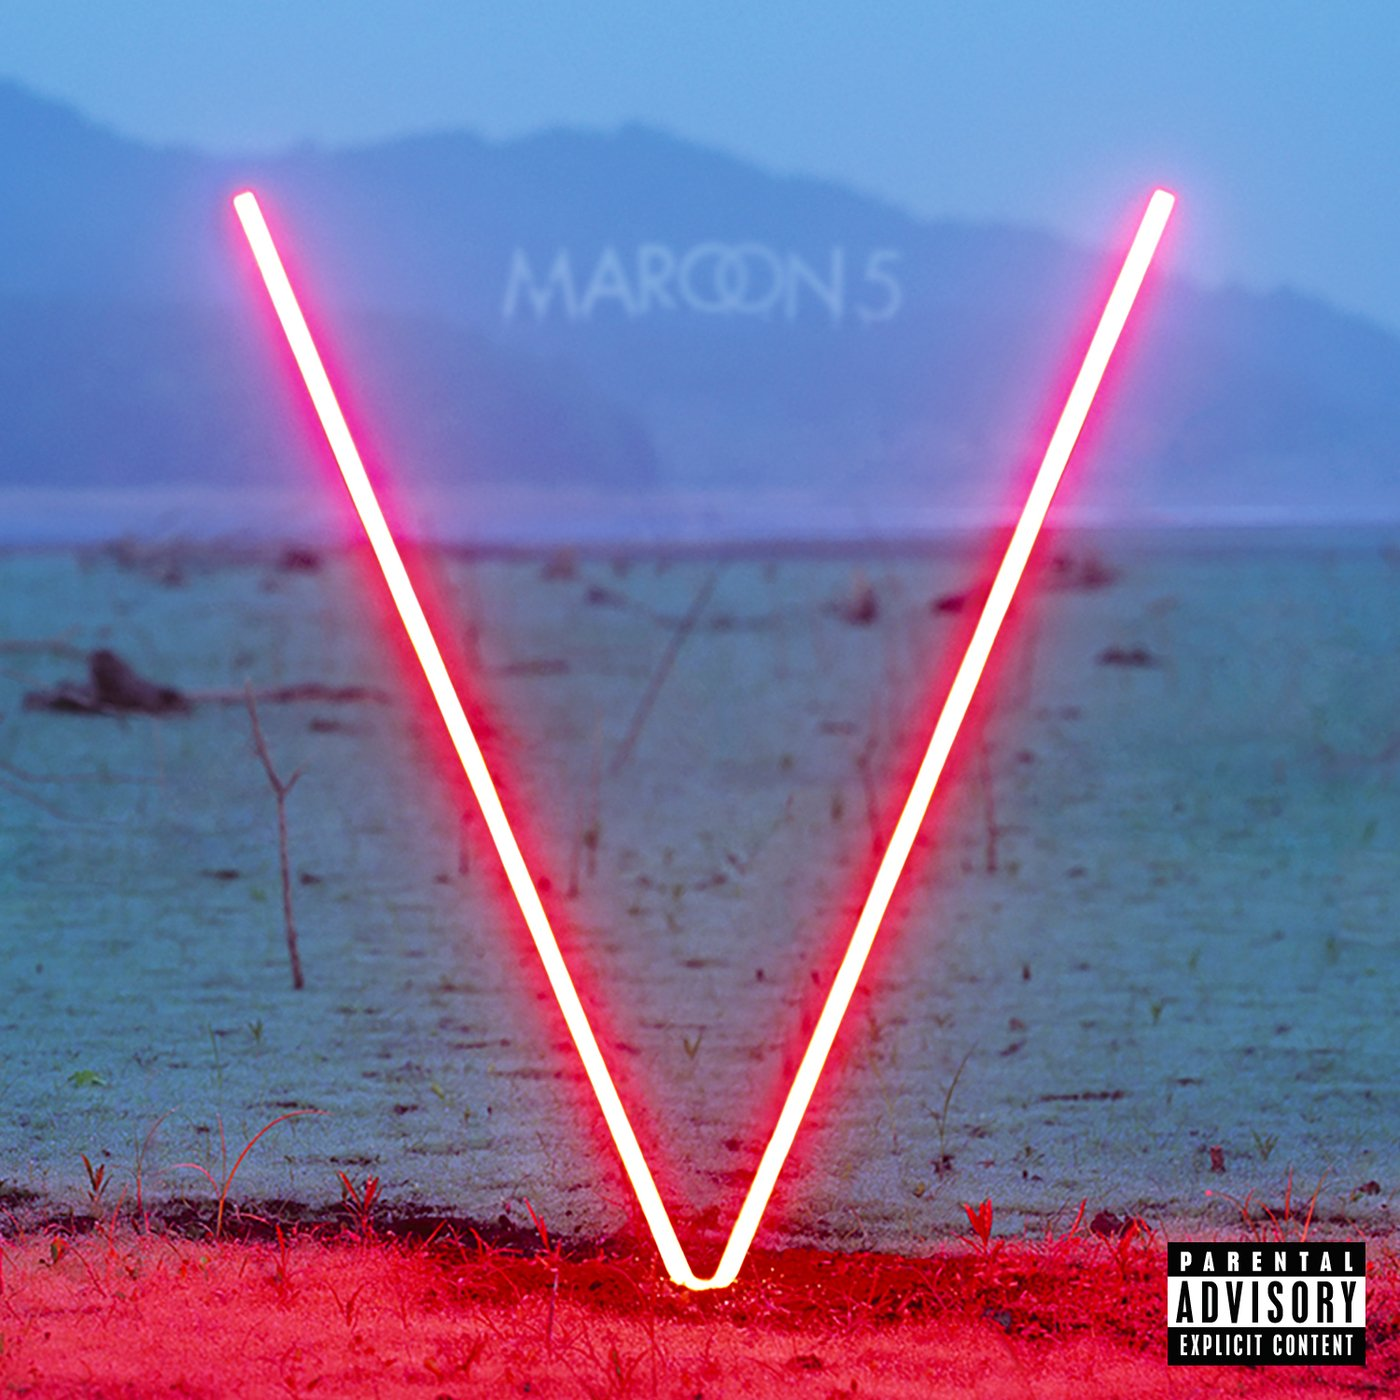 V Album Cover Maroon 5 V Amazon co uk Music